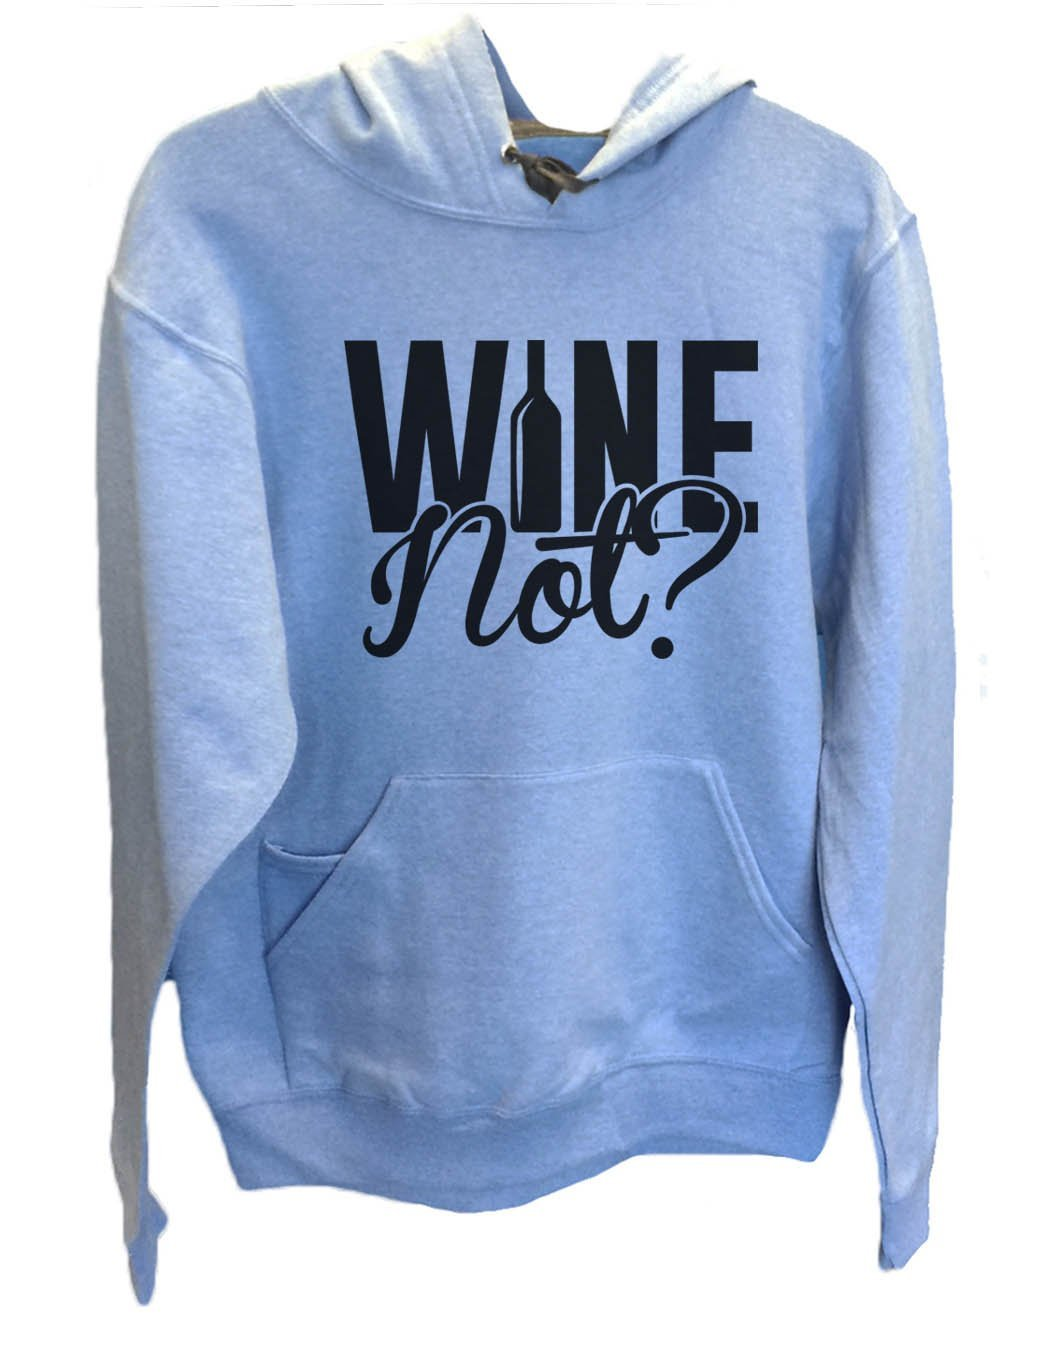 UNISEX HOODIE - Wine Not? - FUNNY MENS AND WOMENS HOODED SWEATSHIRTS - 2161 Funny Shirt Small / North Carolina Blue